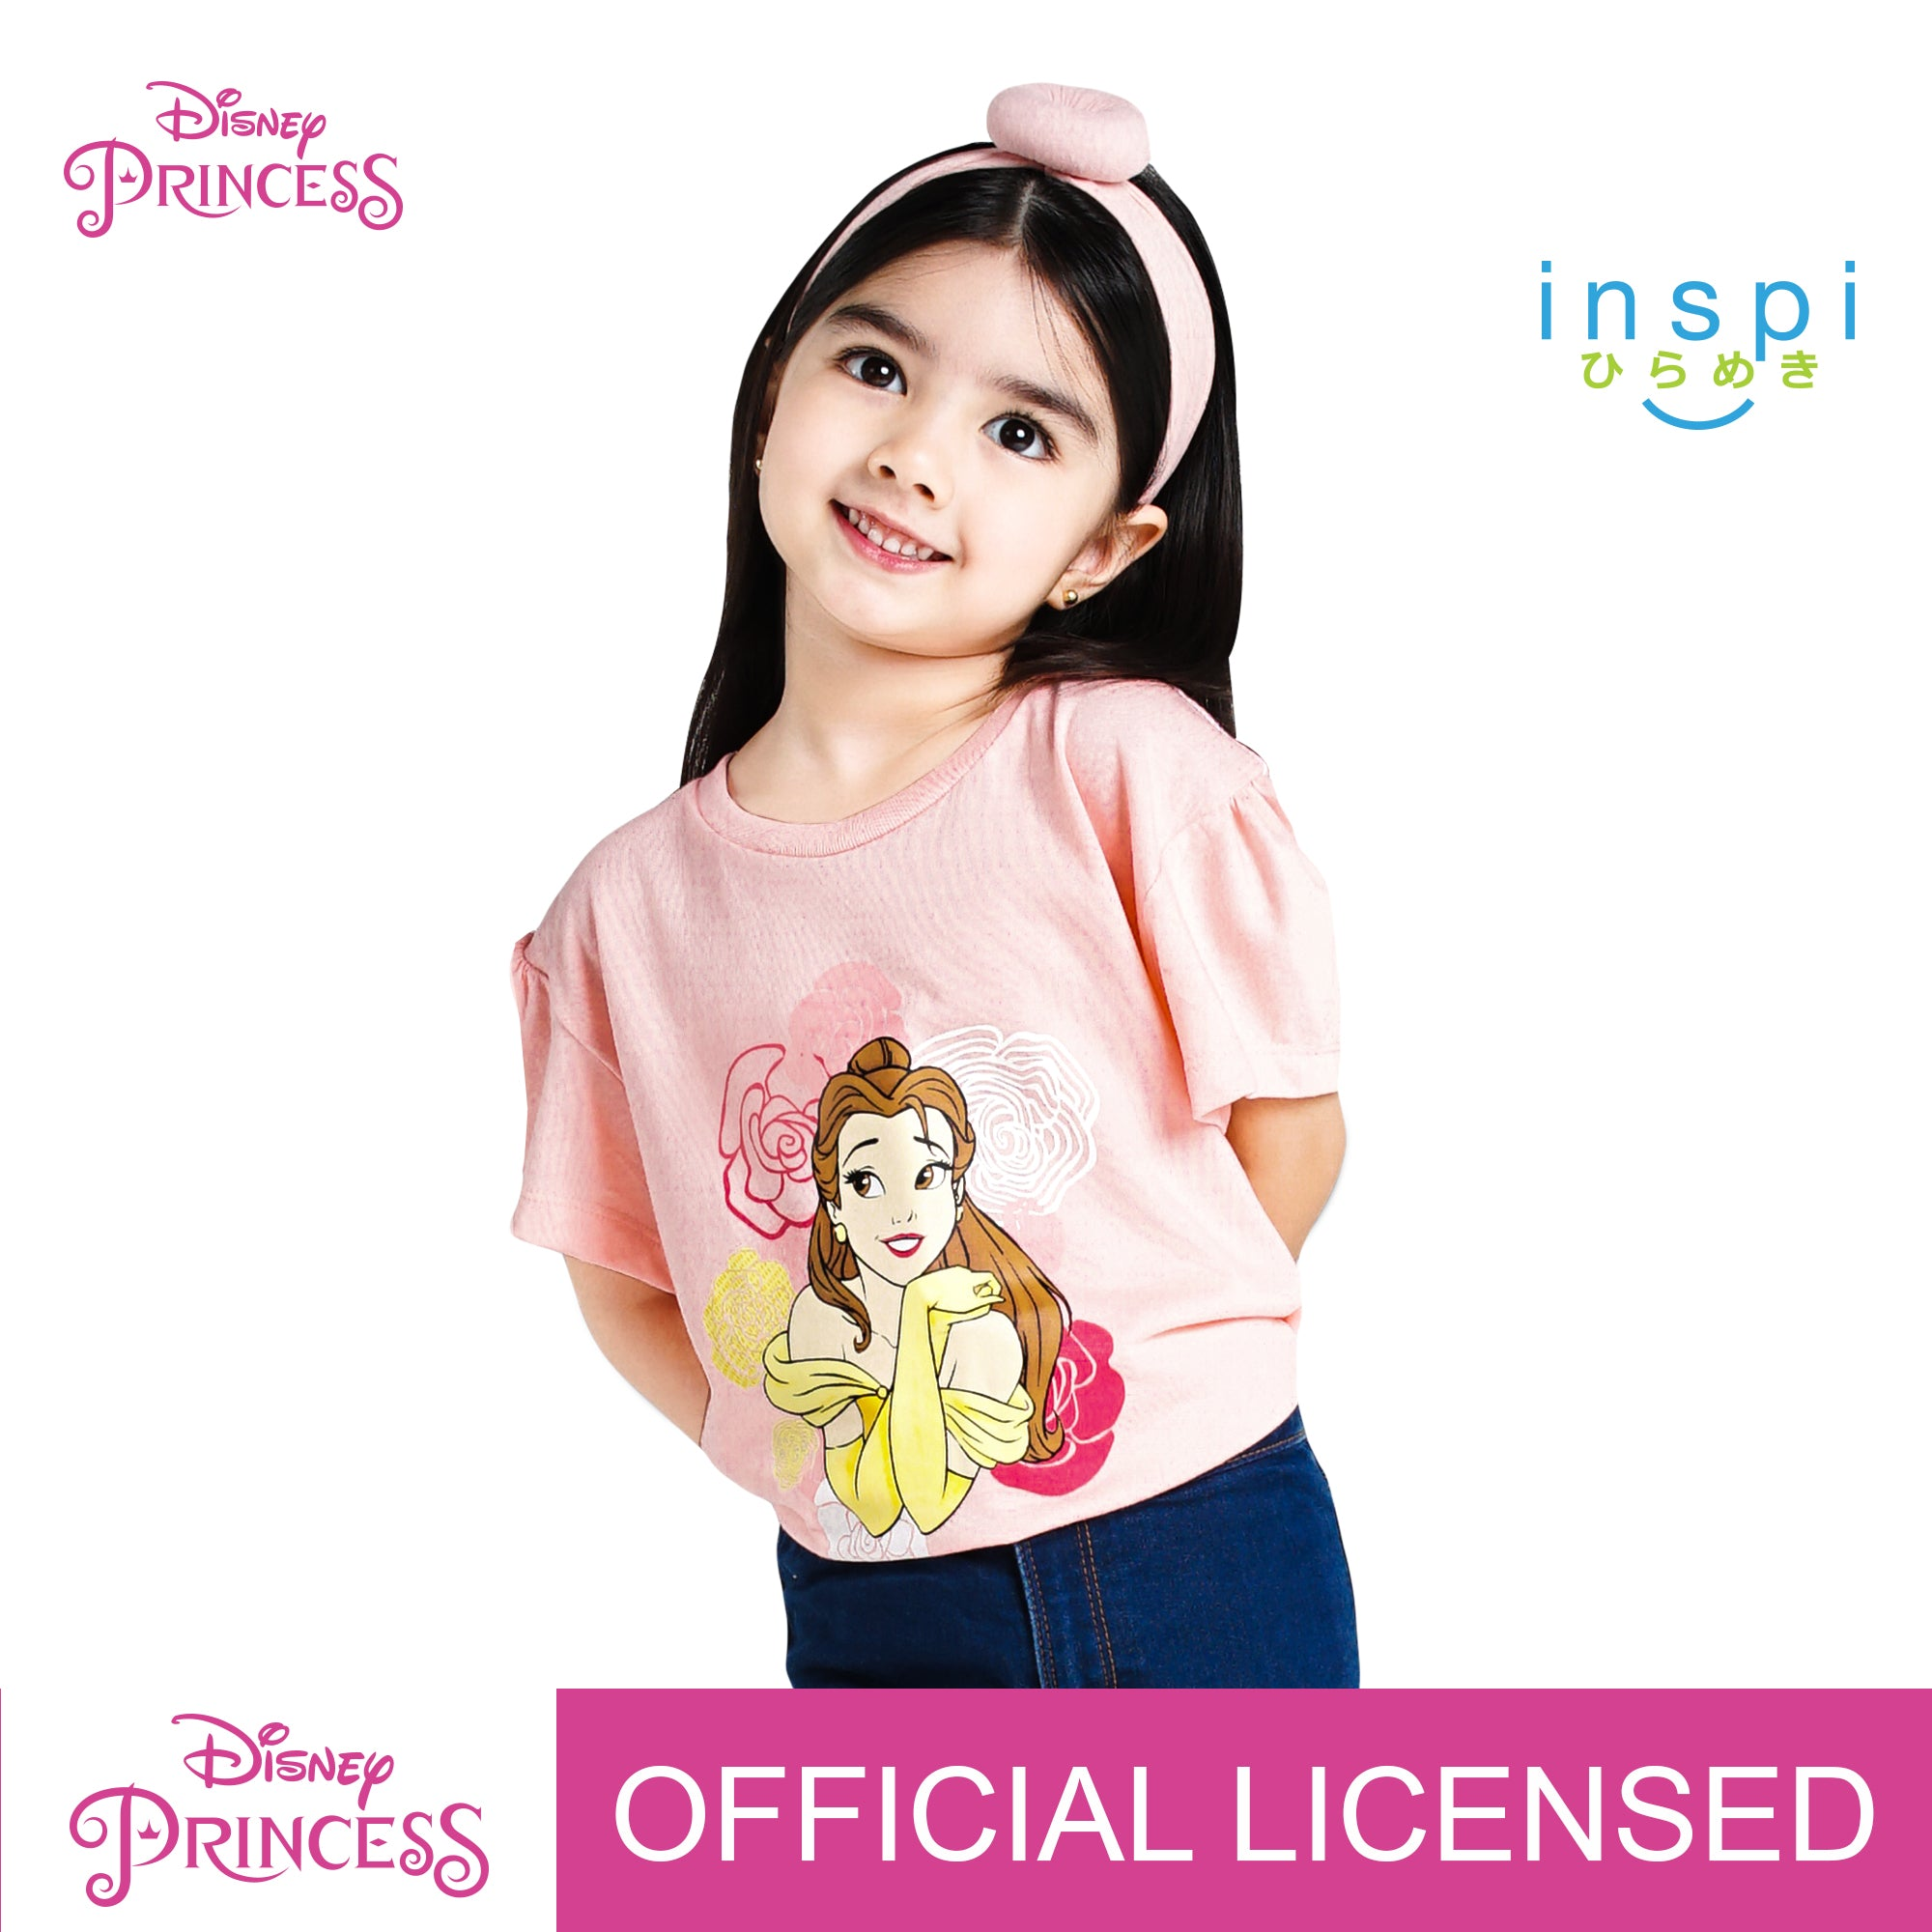 Disney Princess Belle in Roses Tshirt in Dairy Peach for Girls Inspi Shirt